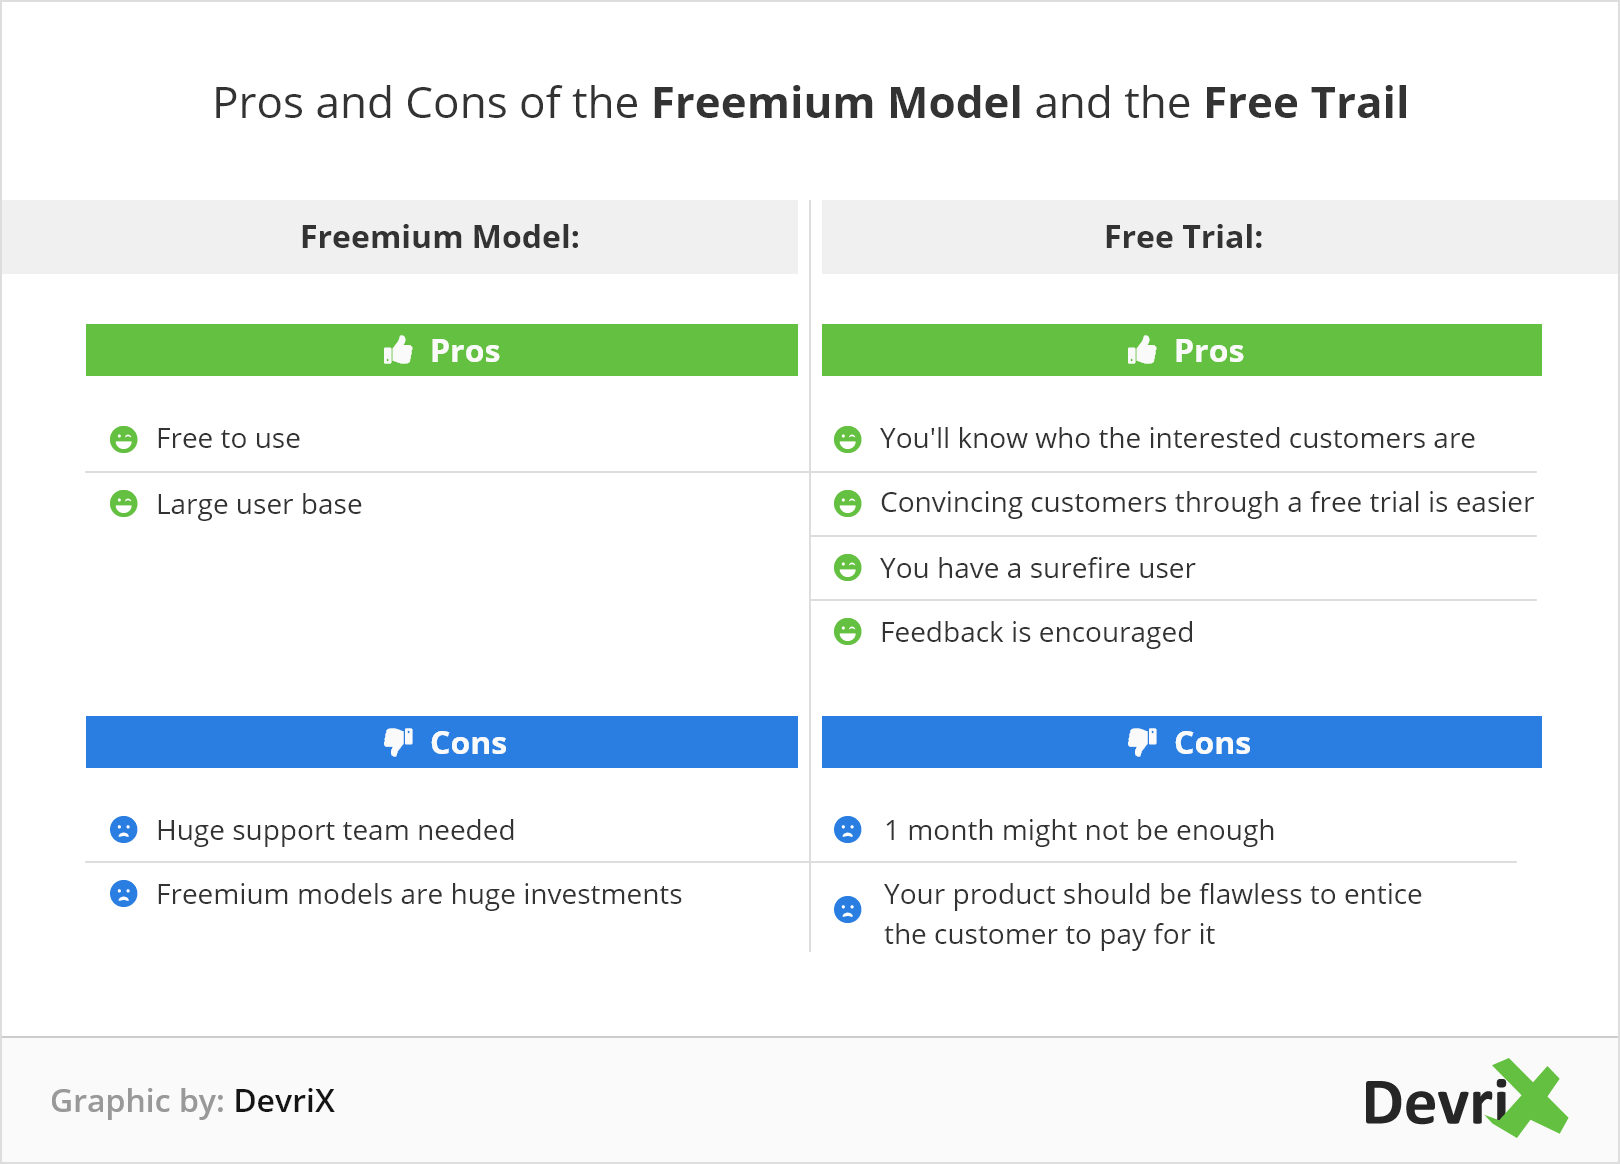 Pros and cons of Freemium Model or Free Trial